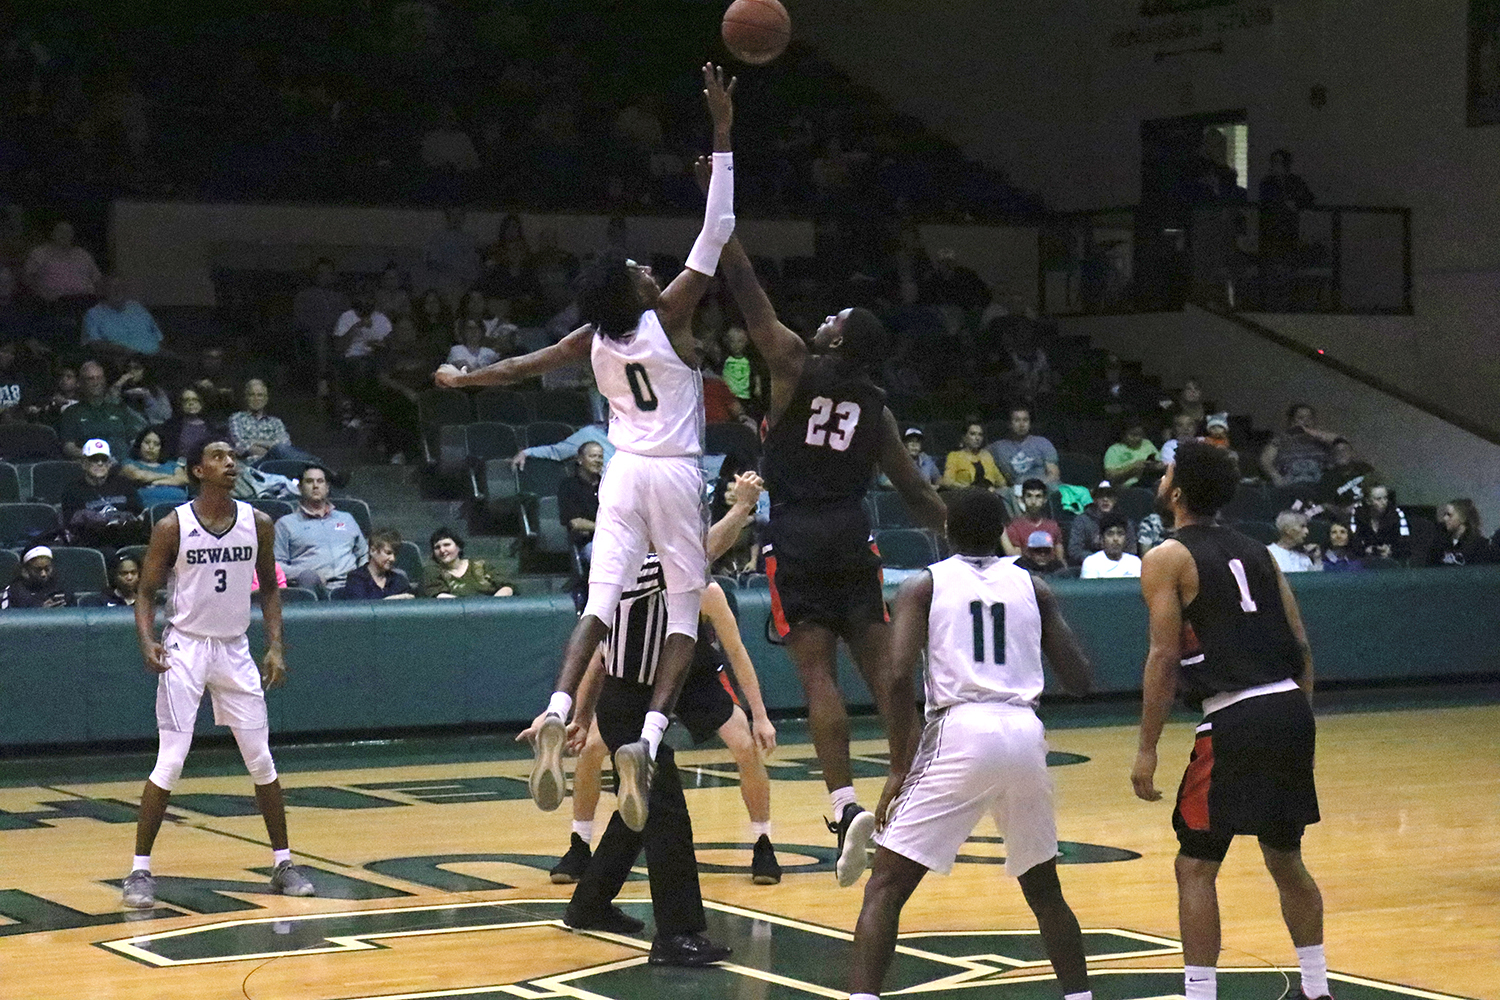 Sophomore guard, Isiah Small jumps for the ball during the tip-off of a game.